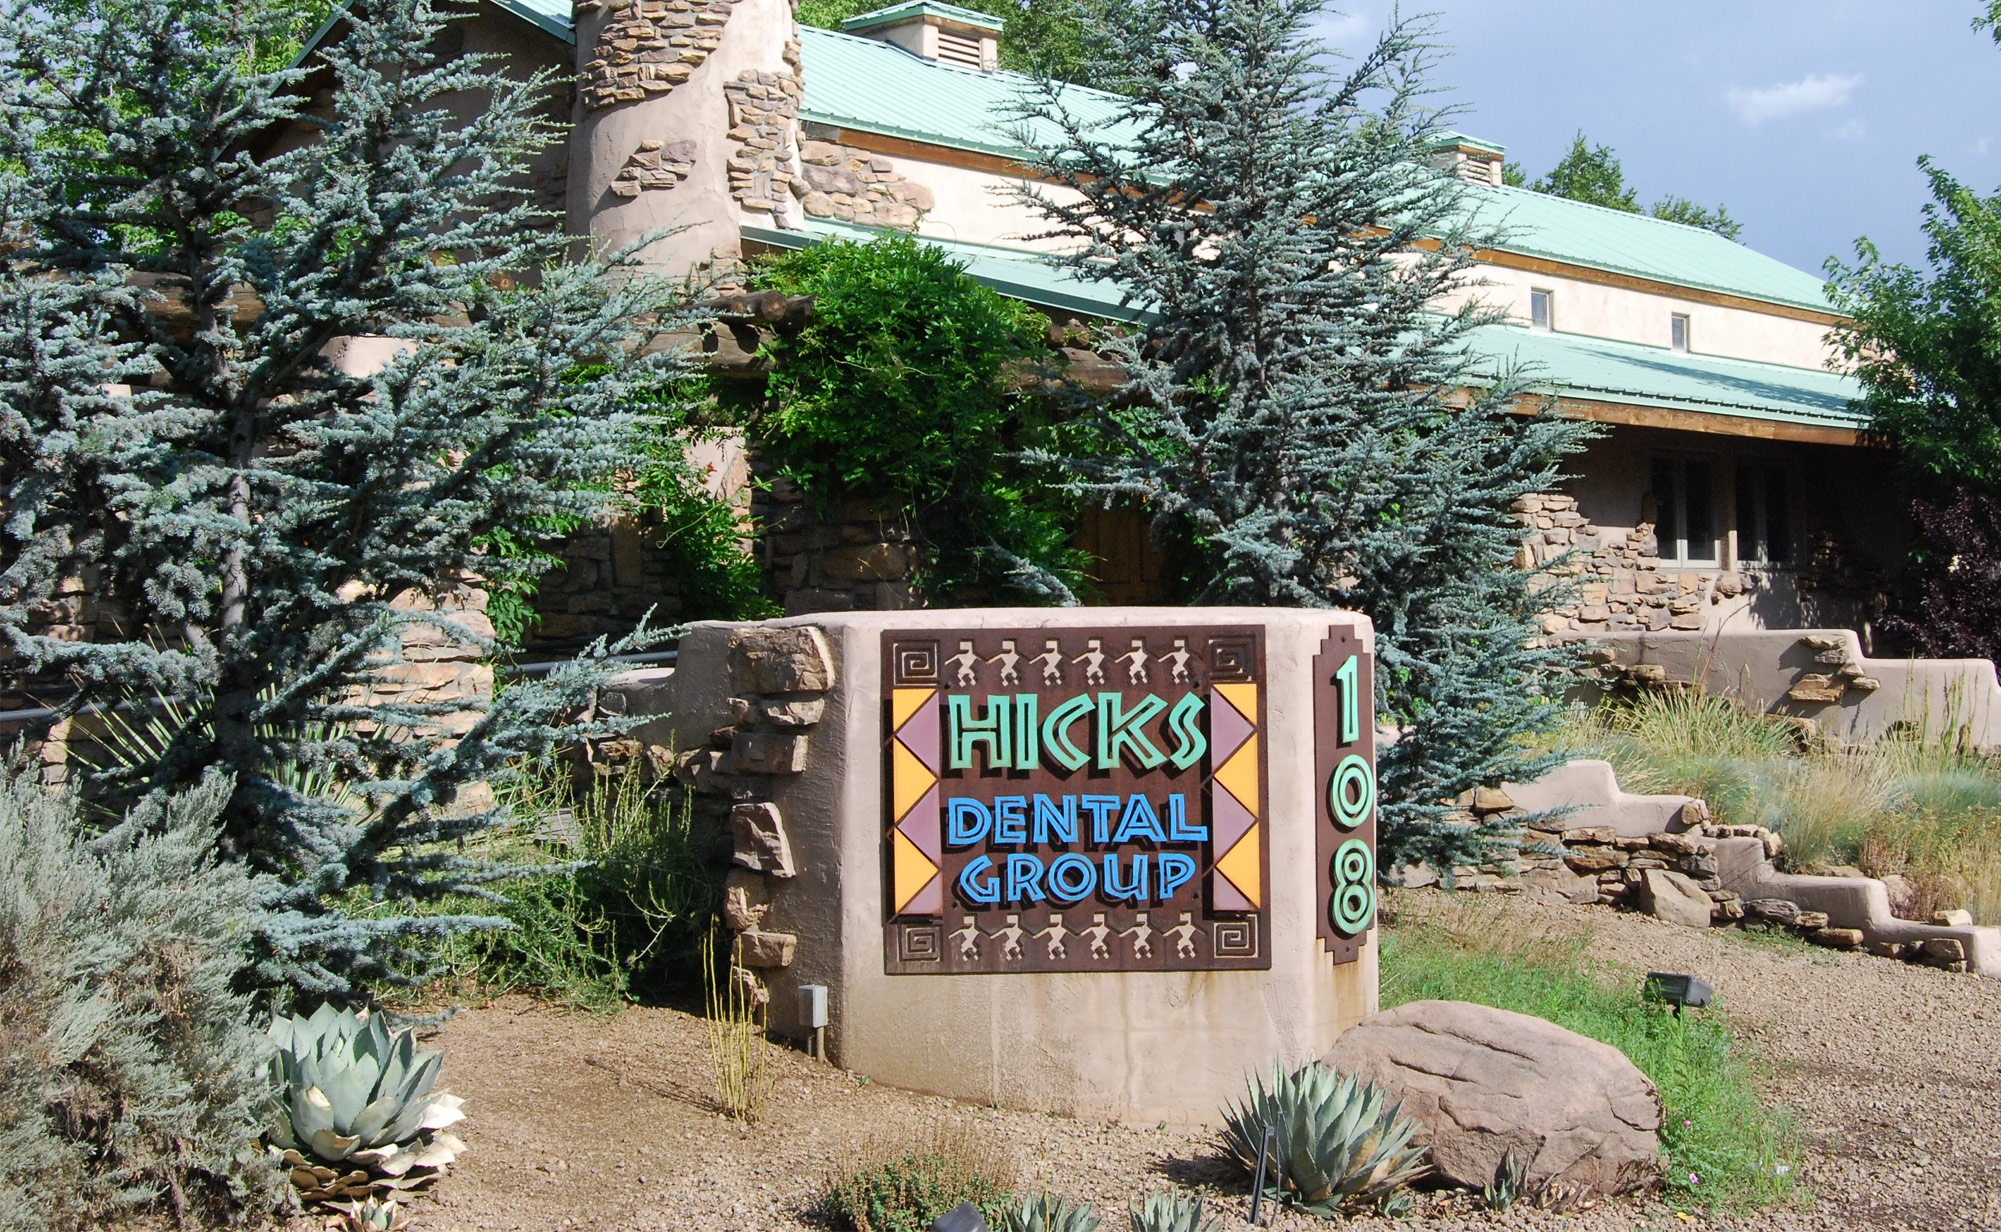 view of Hicks Dental Group building with surrounding plants and trees